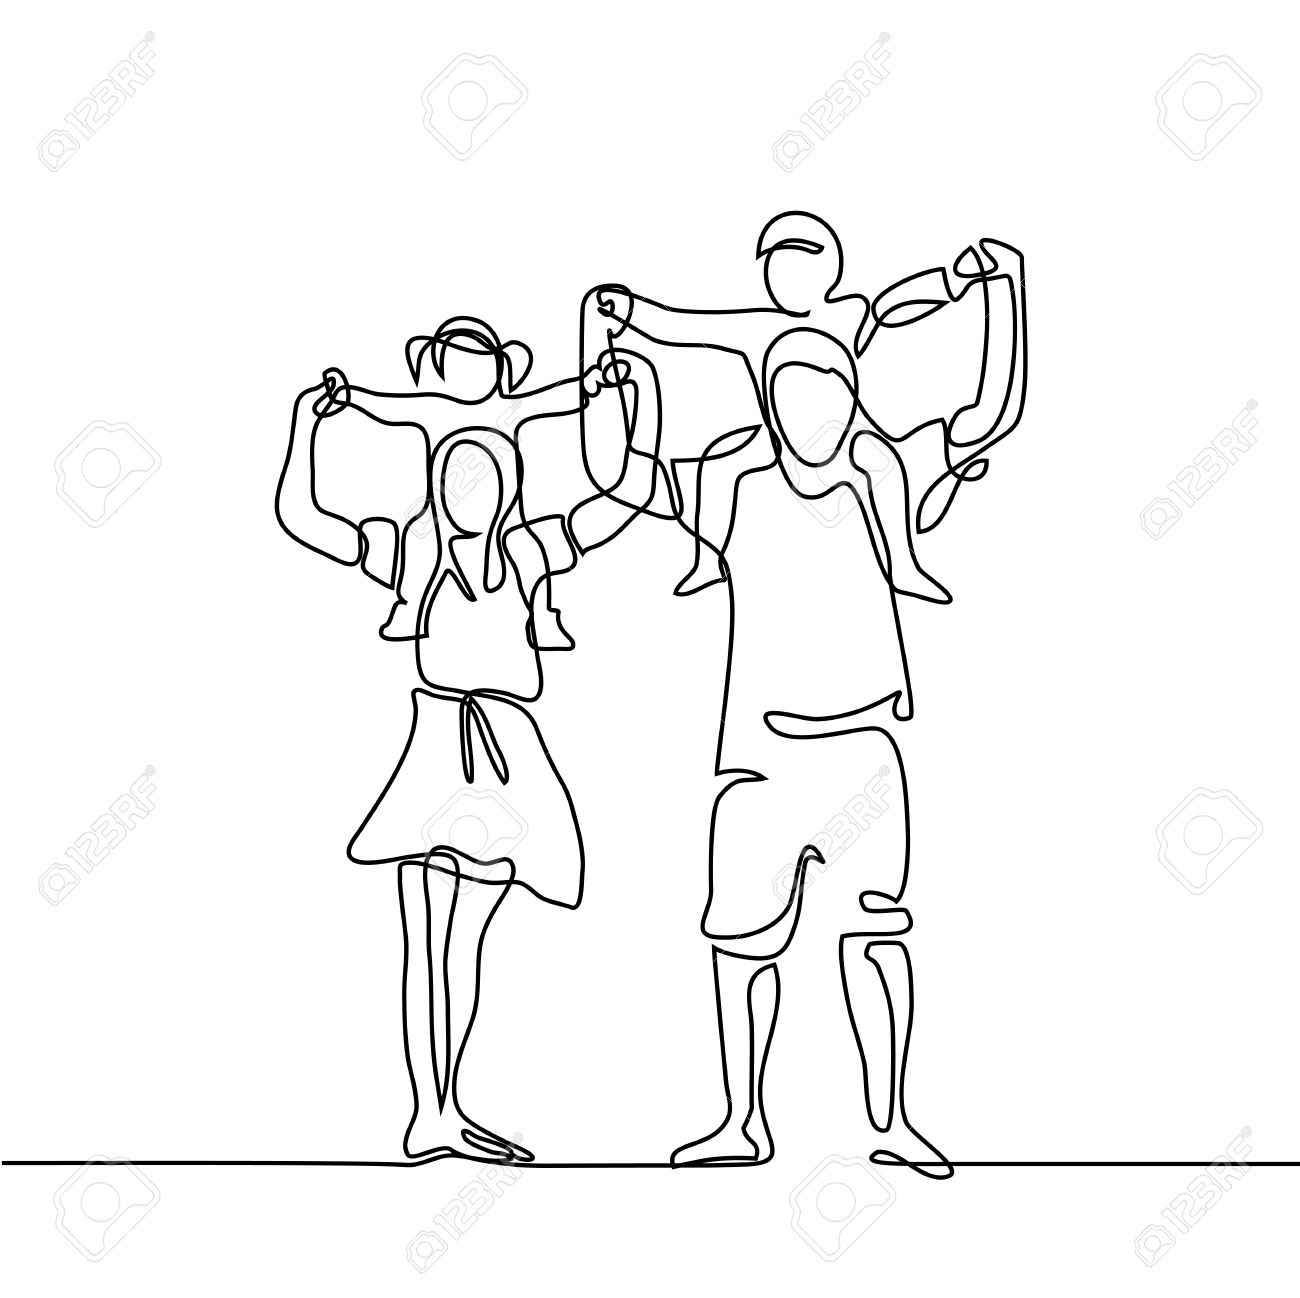 Continuous line drawing vector illustration. Happy family with children on shoulders - 80178995